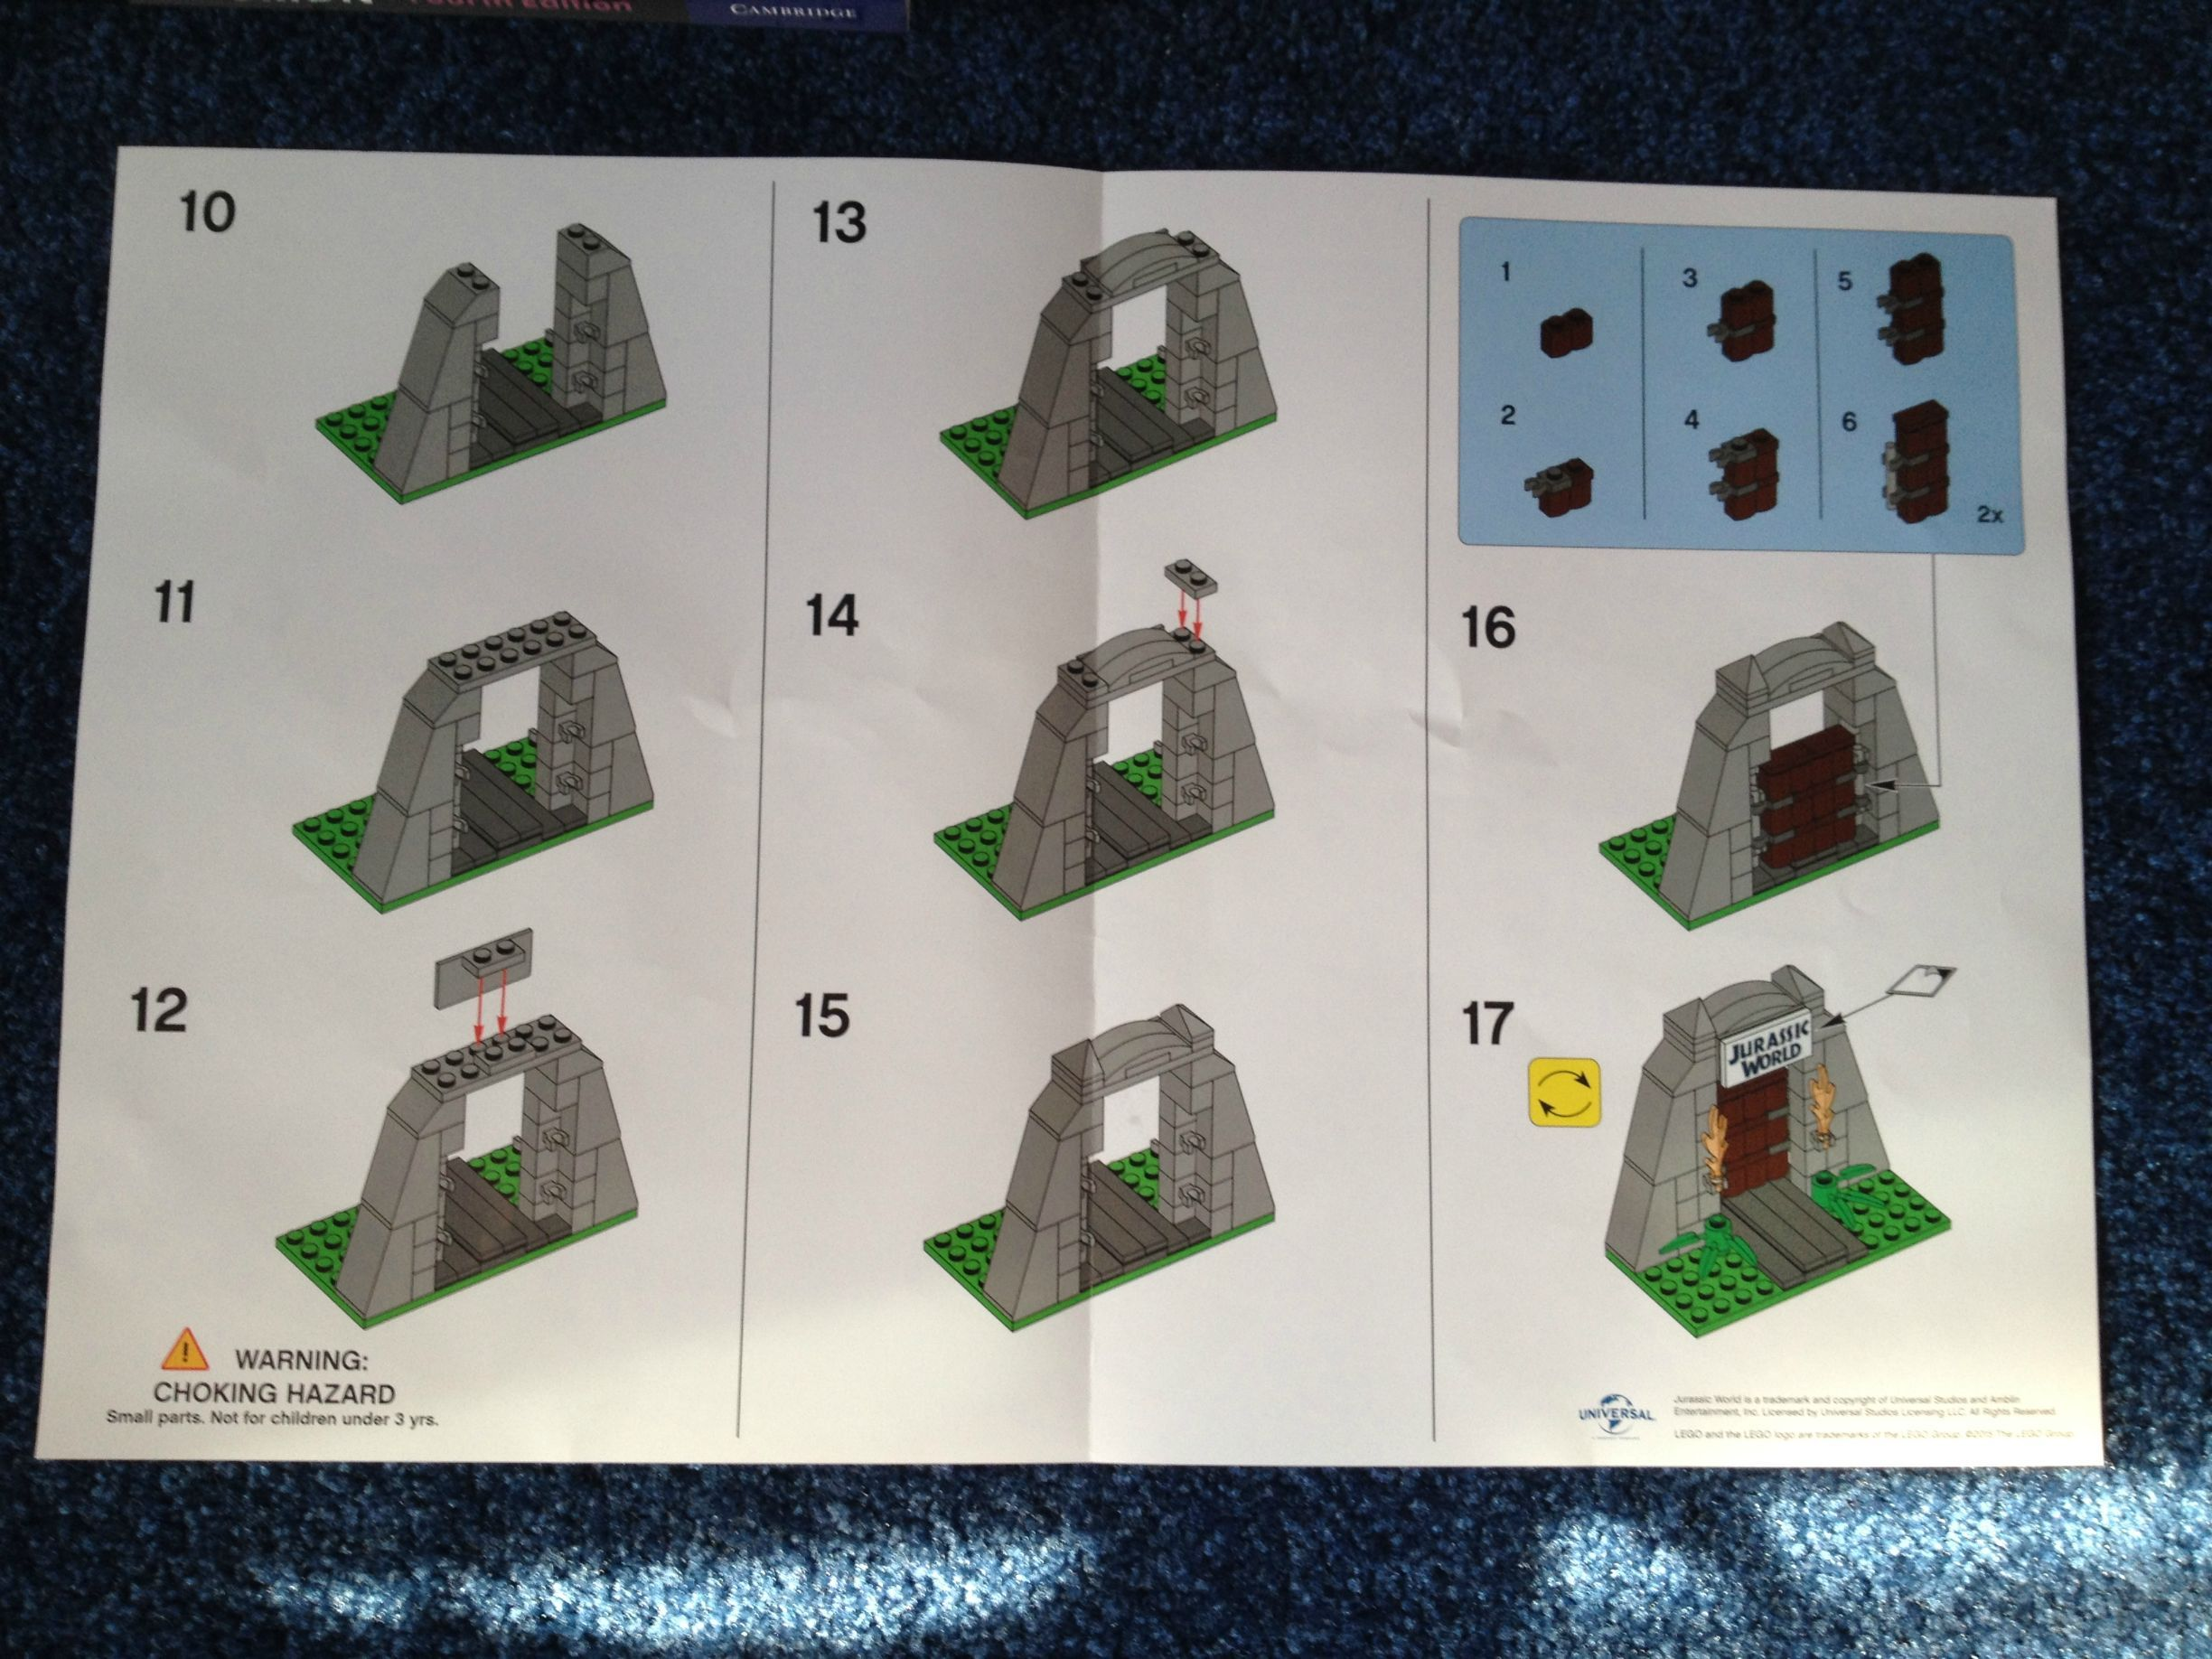 Lego Jurassic World Gate Toys R Us Building Instructions The Brick Fan Lego Pinterest